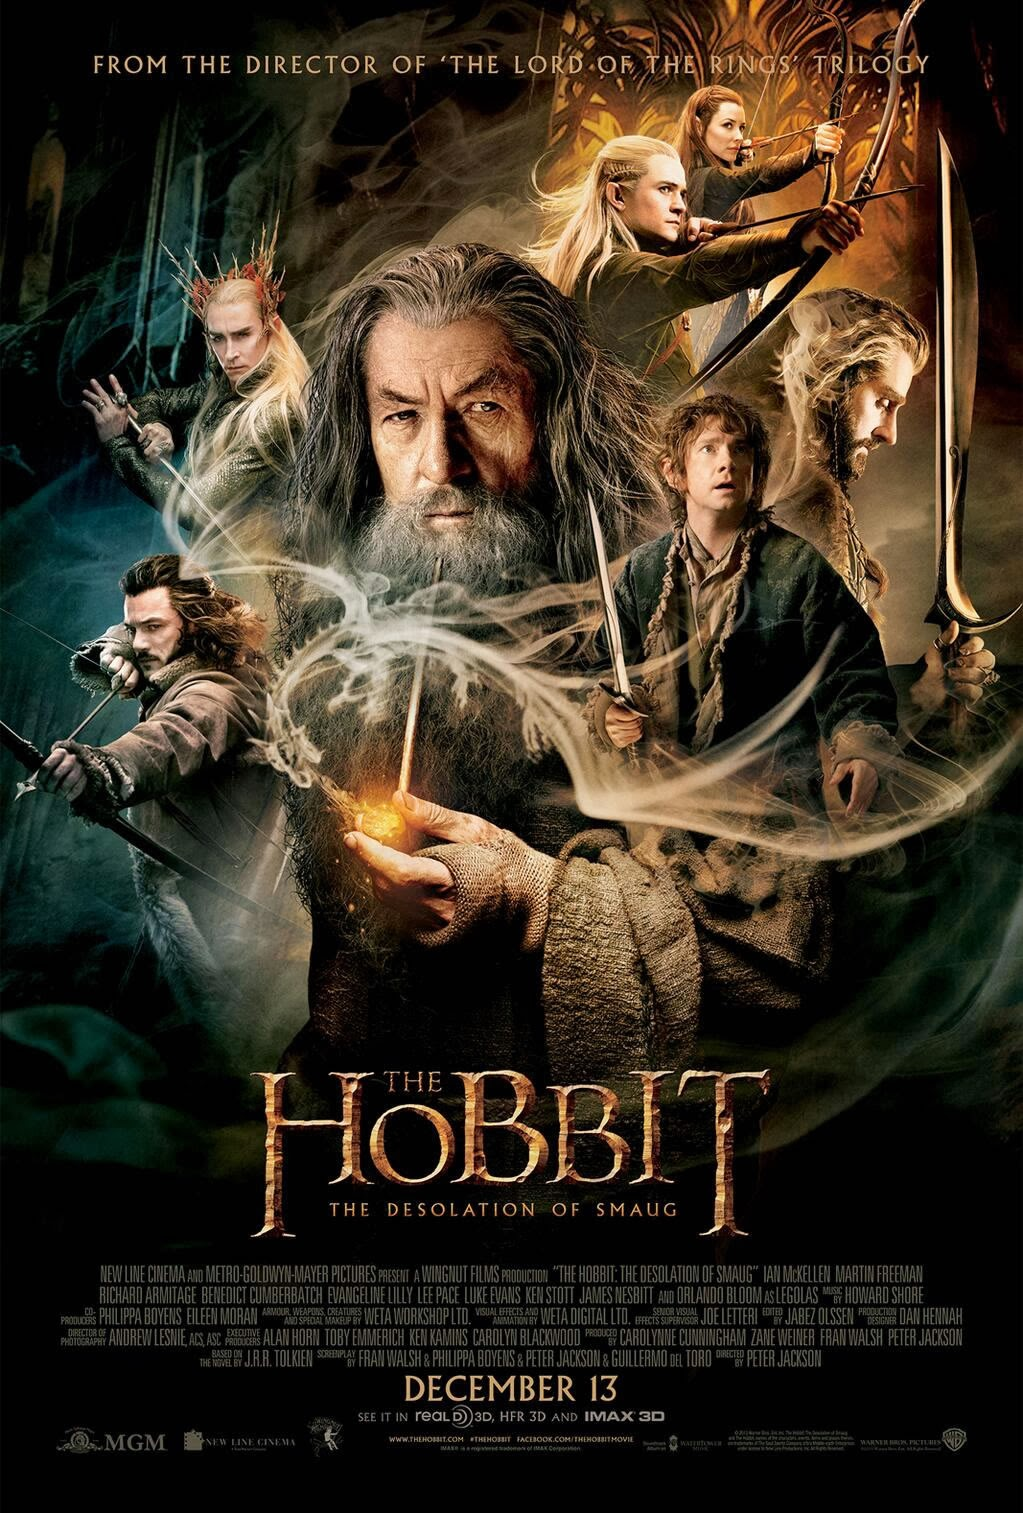 O Hobbit : A Desolação de Smaug Torrent BluRay 1080p e 720p Dual Audio